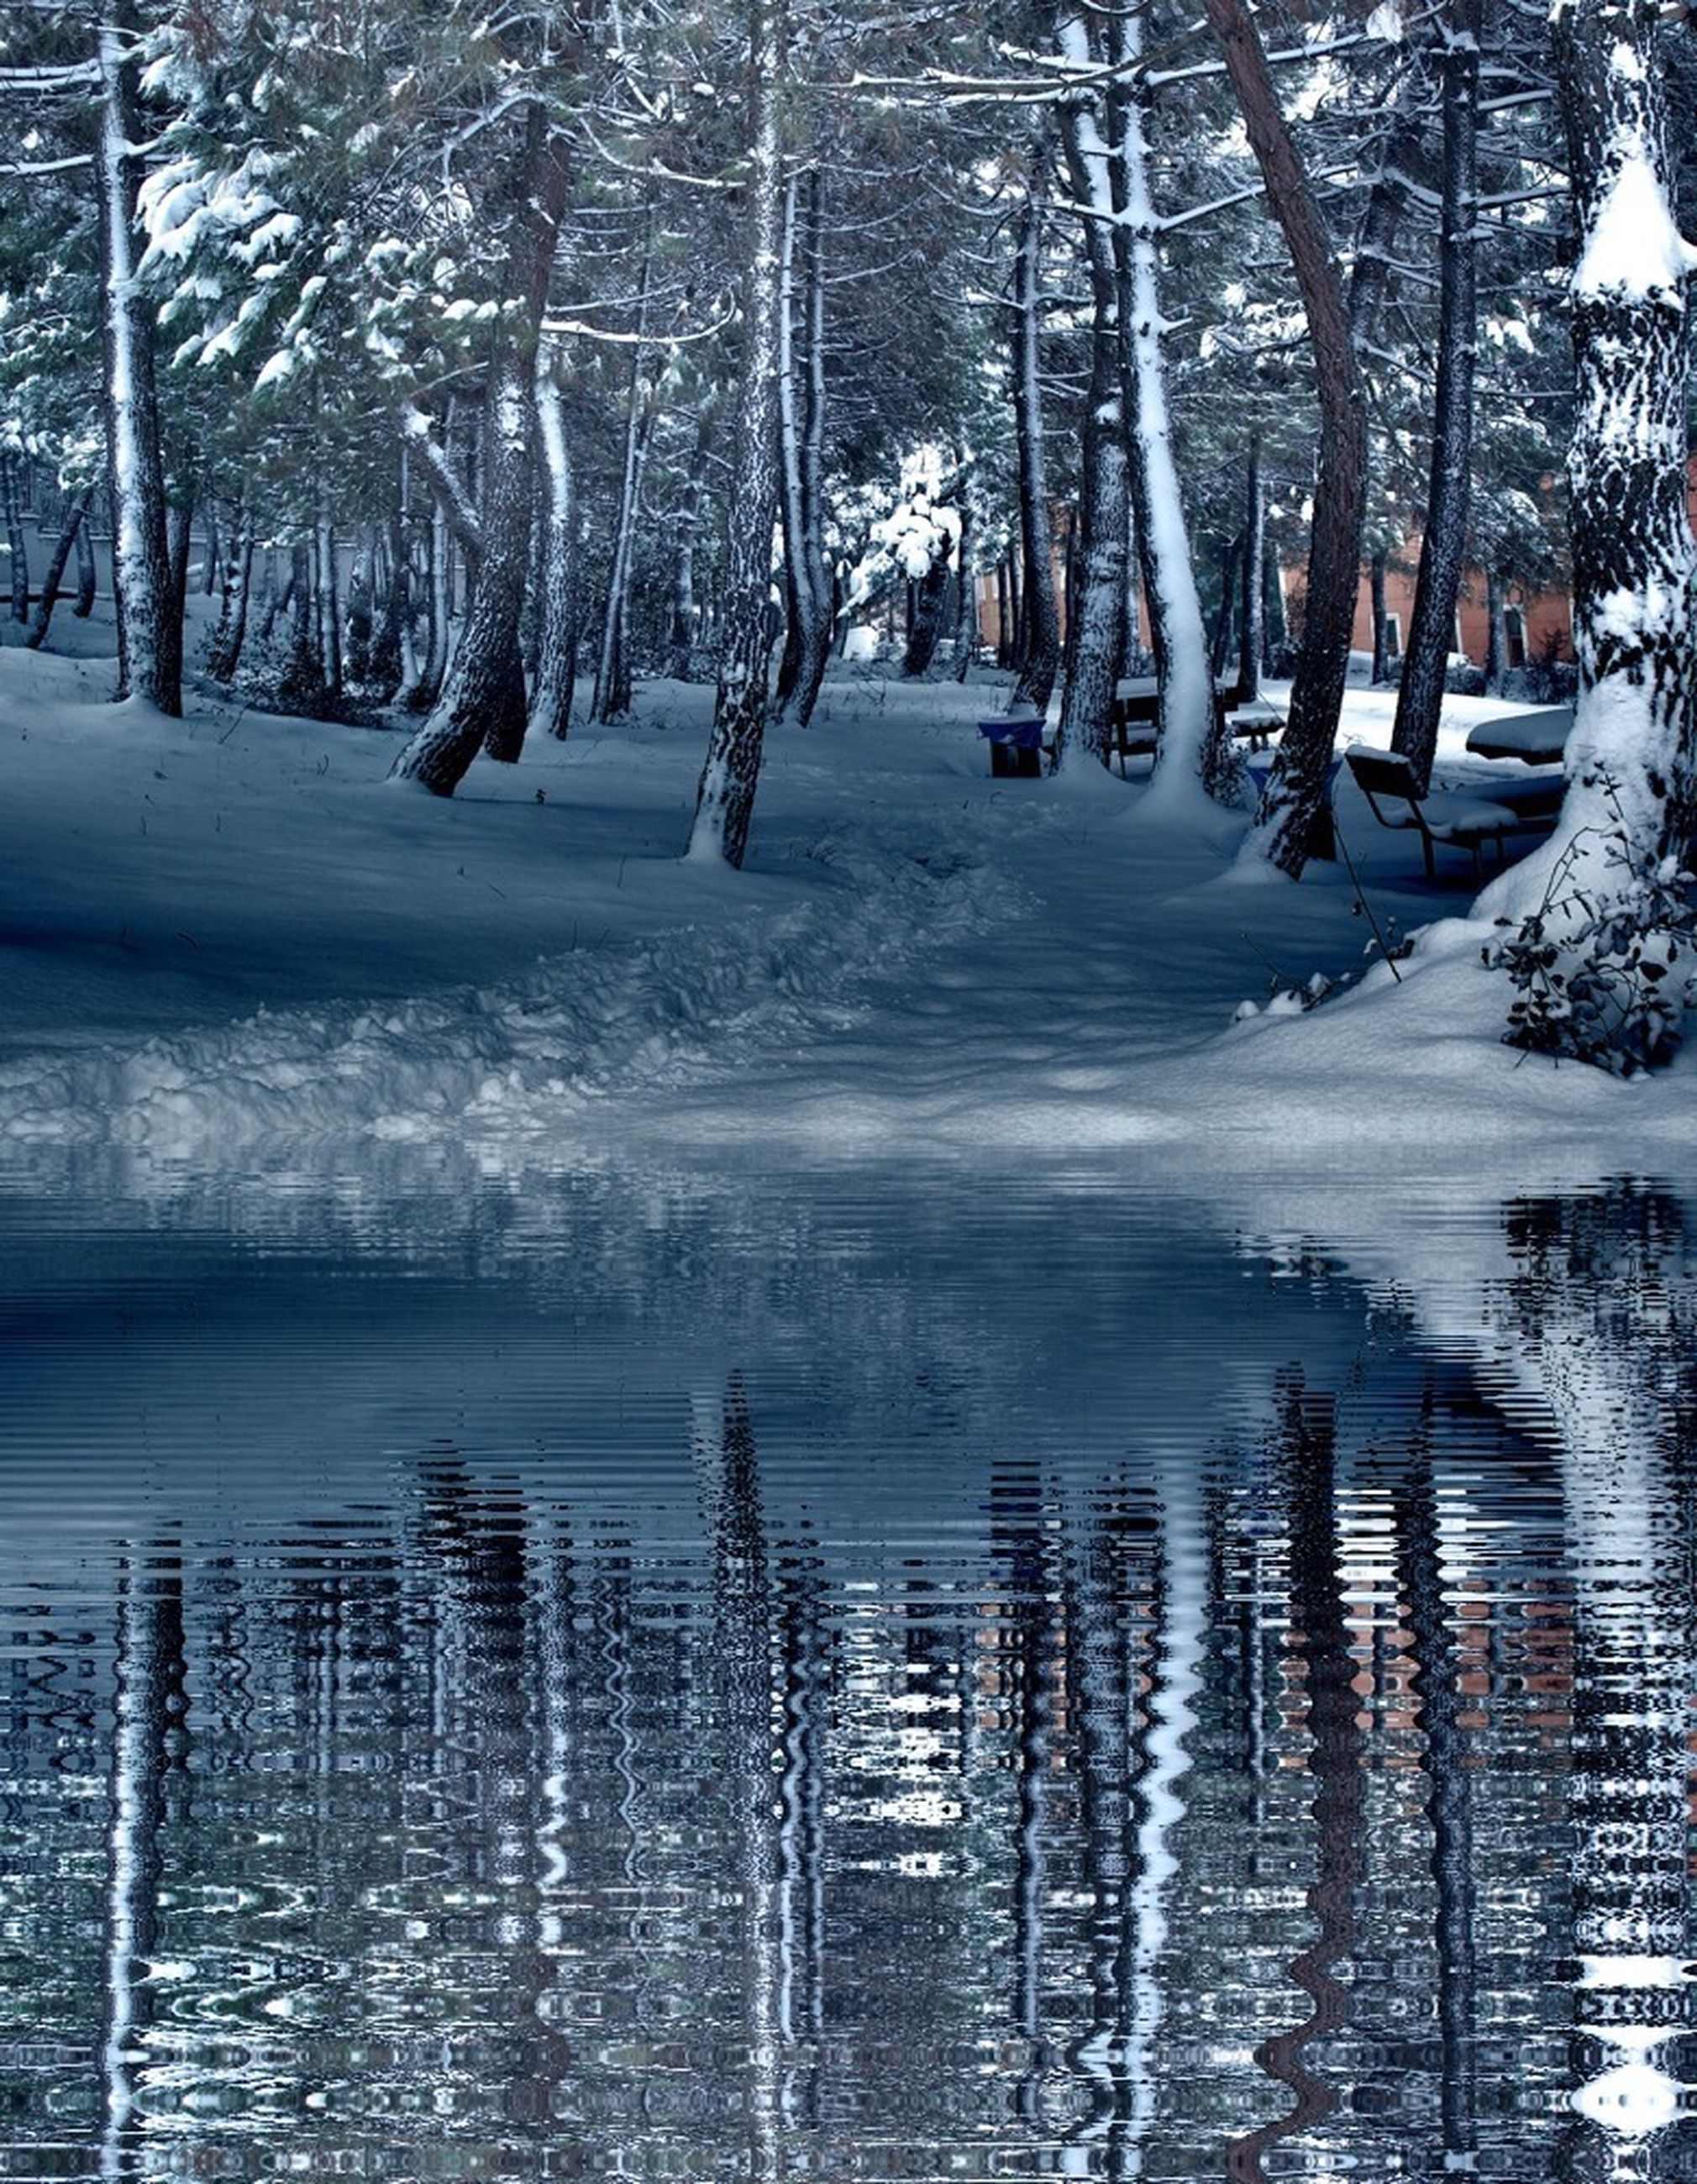 winter, cold temperature, snow, water, tree, frozen, season, bare tree, waterfront, nature, reflection, lake, tree trunk, tranquility, ice, tranquil scene, day, beauty in nature, weather, river